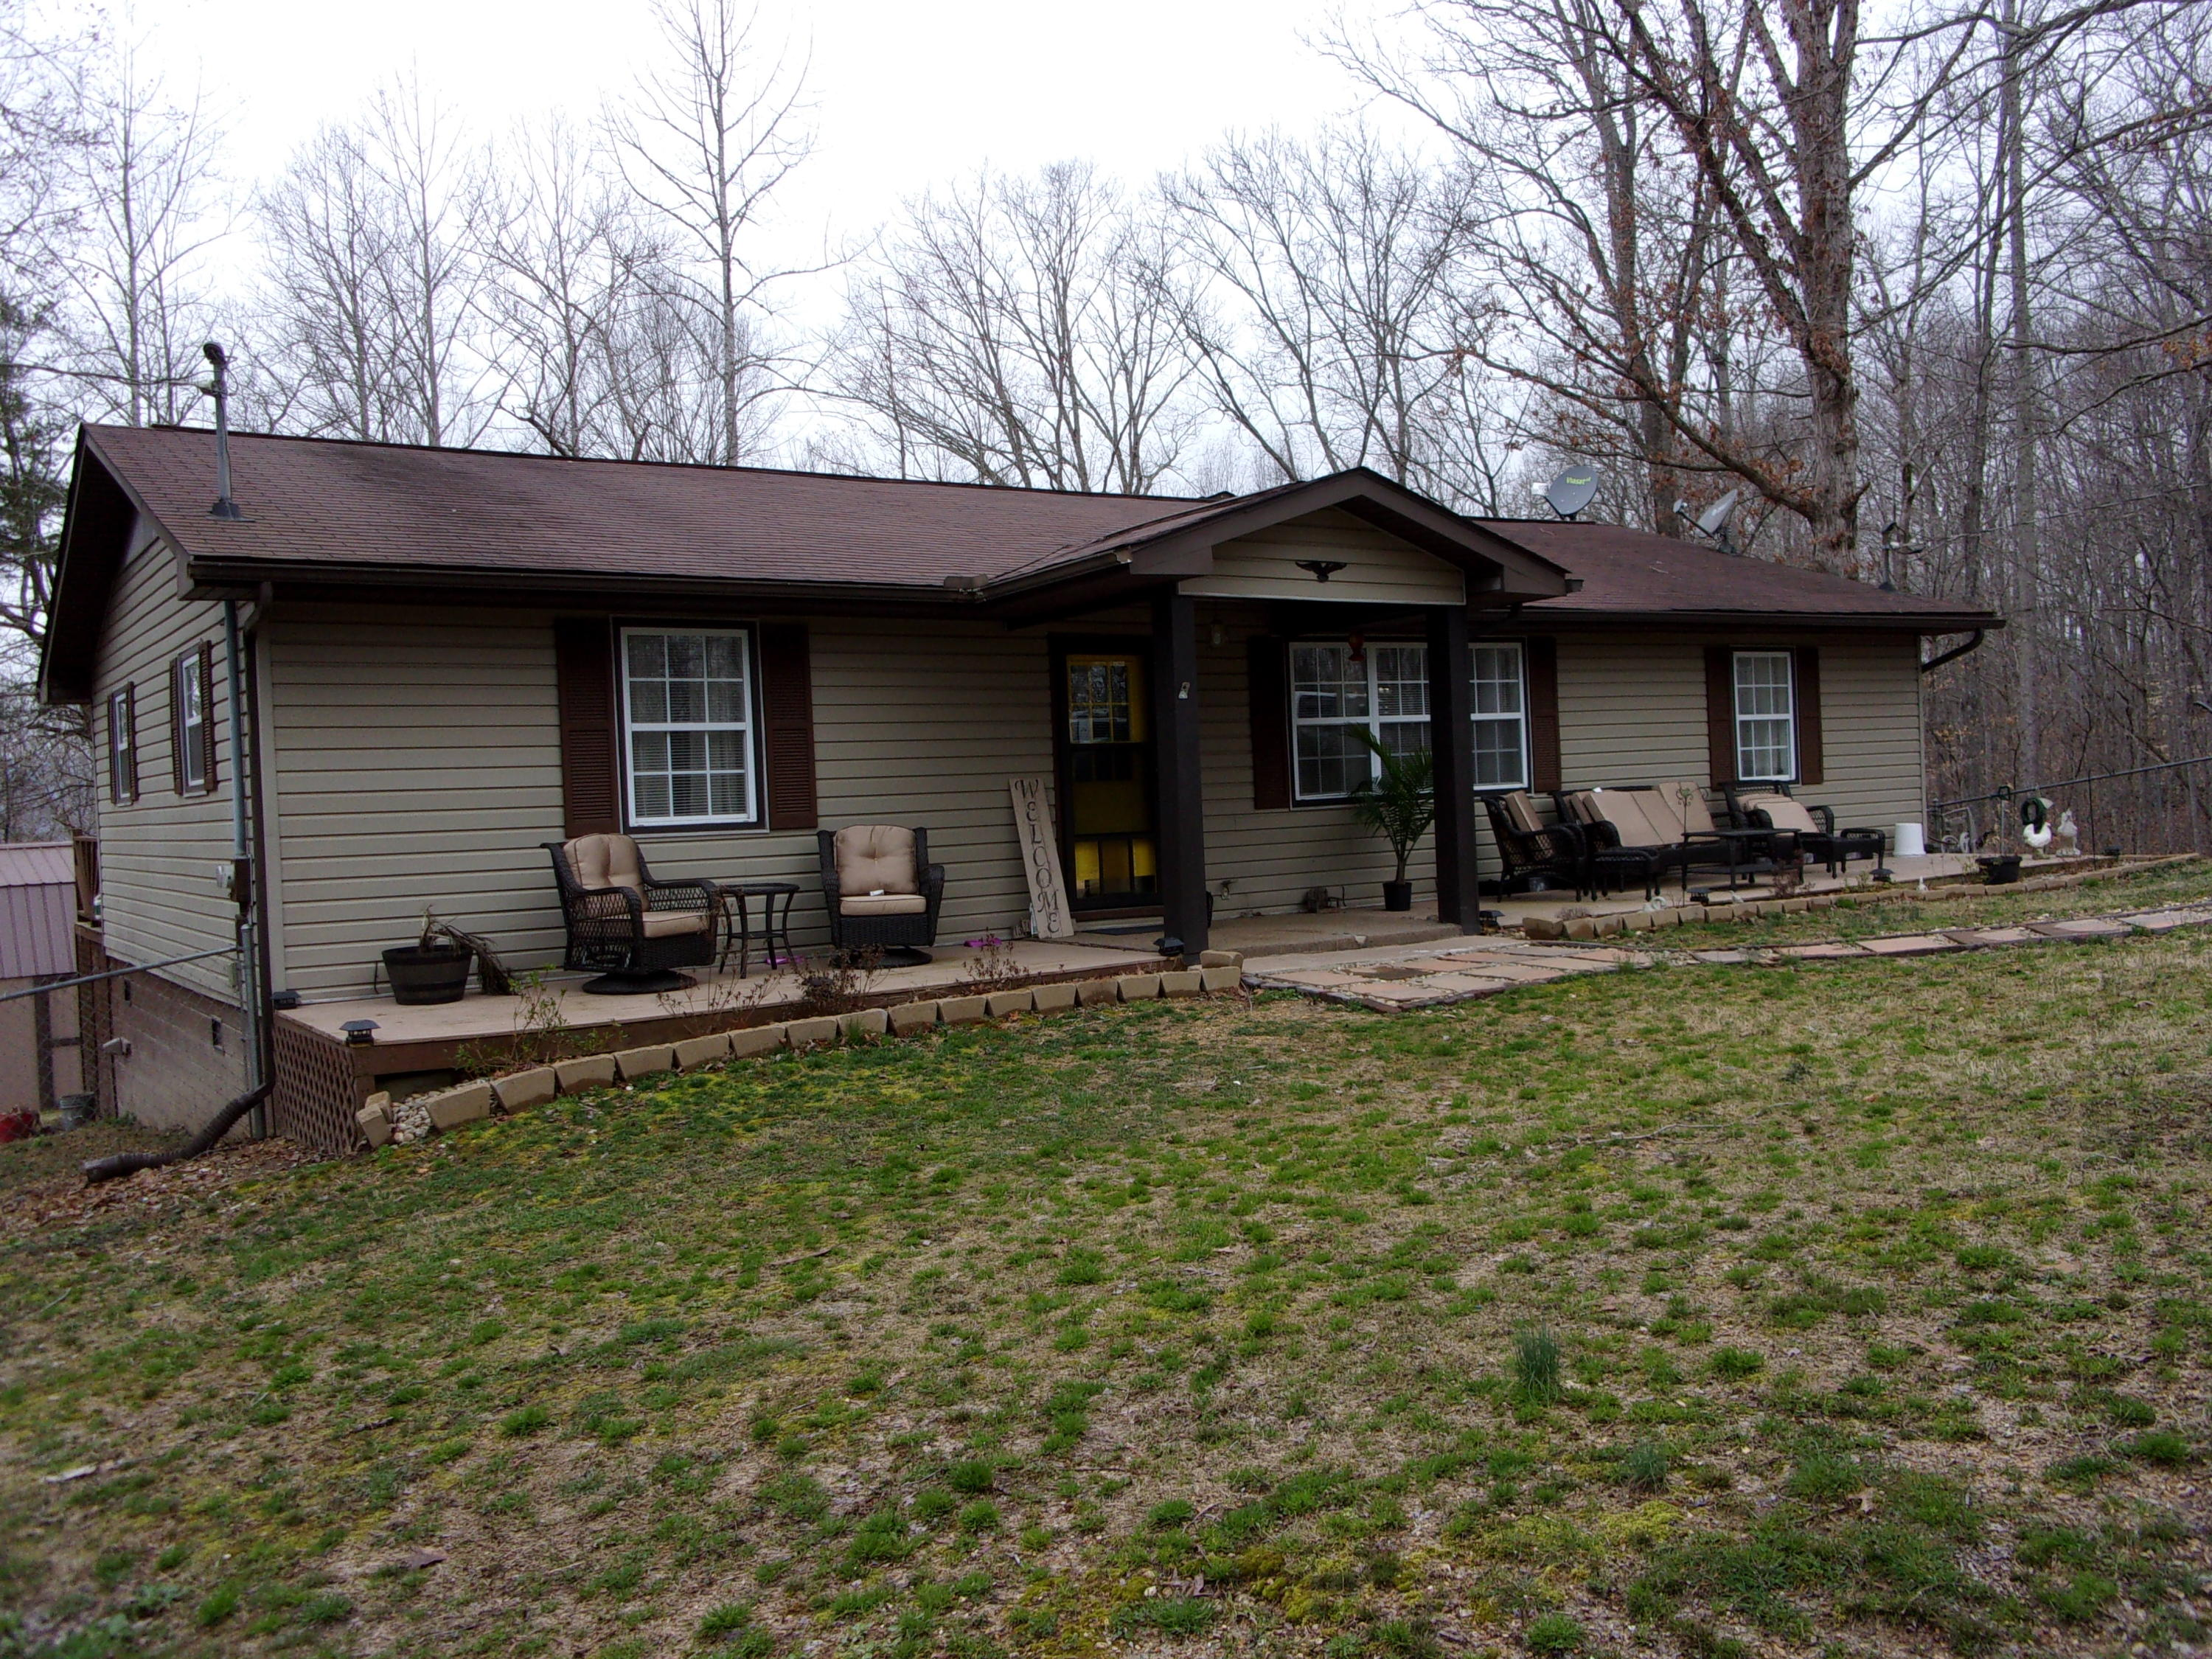 20190304152741040414000000-o Listings anderson county homes for sale